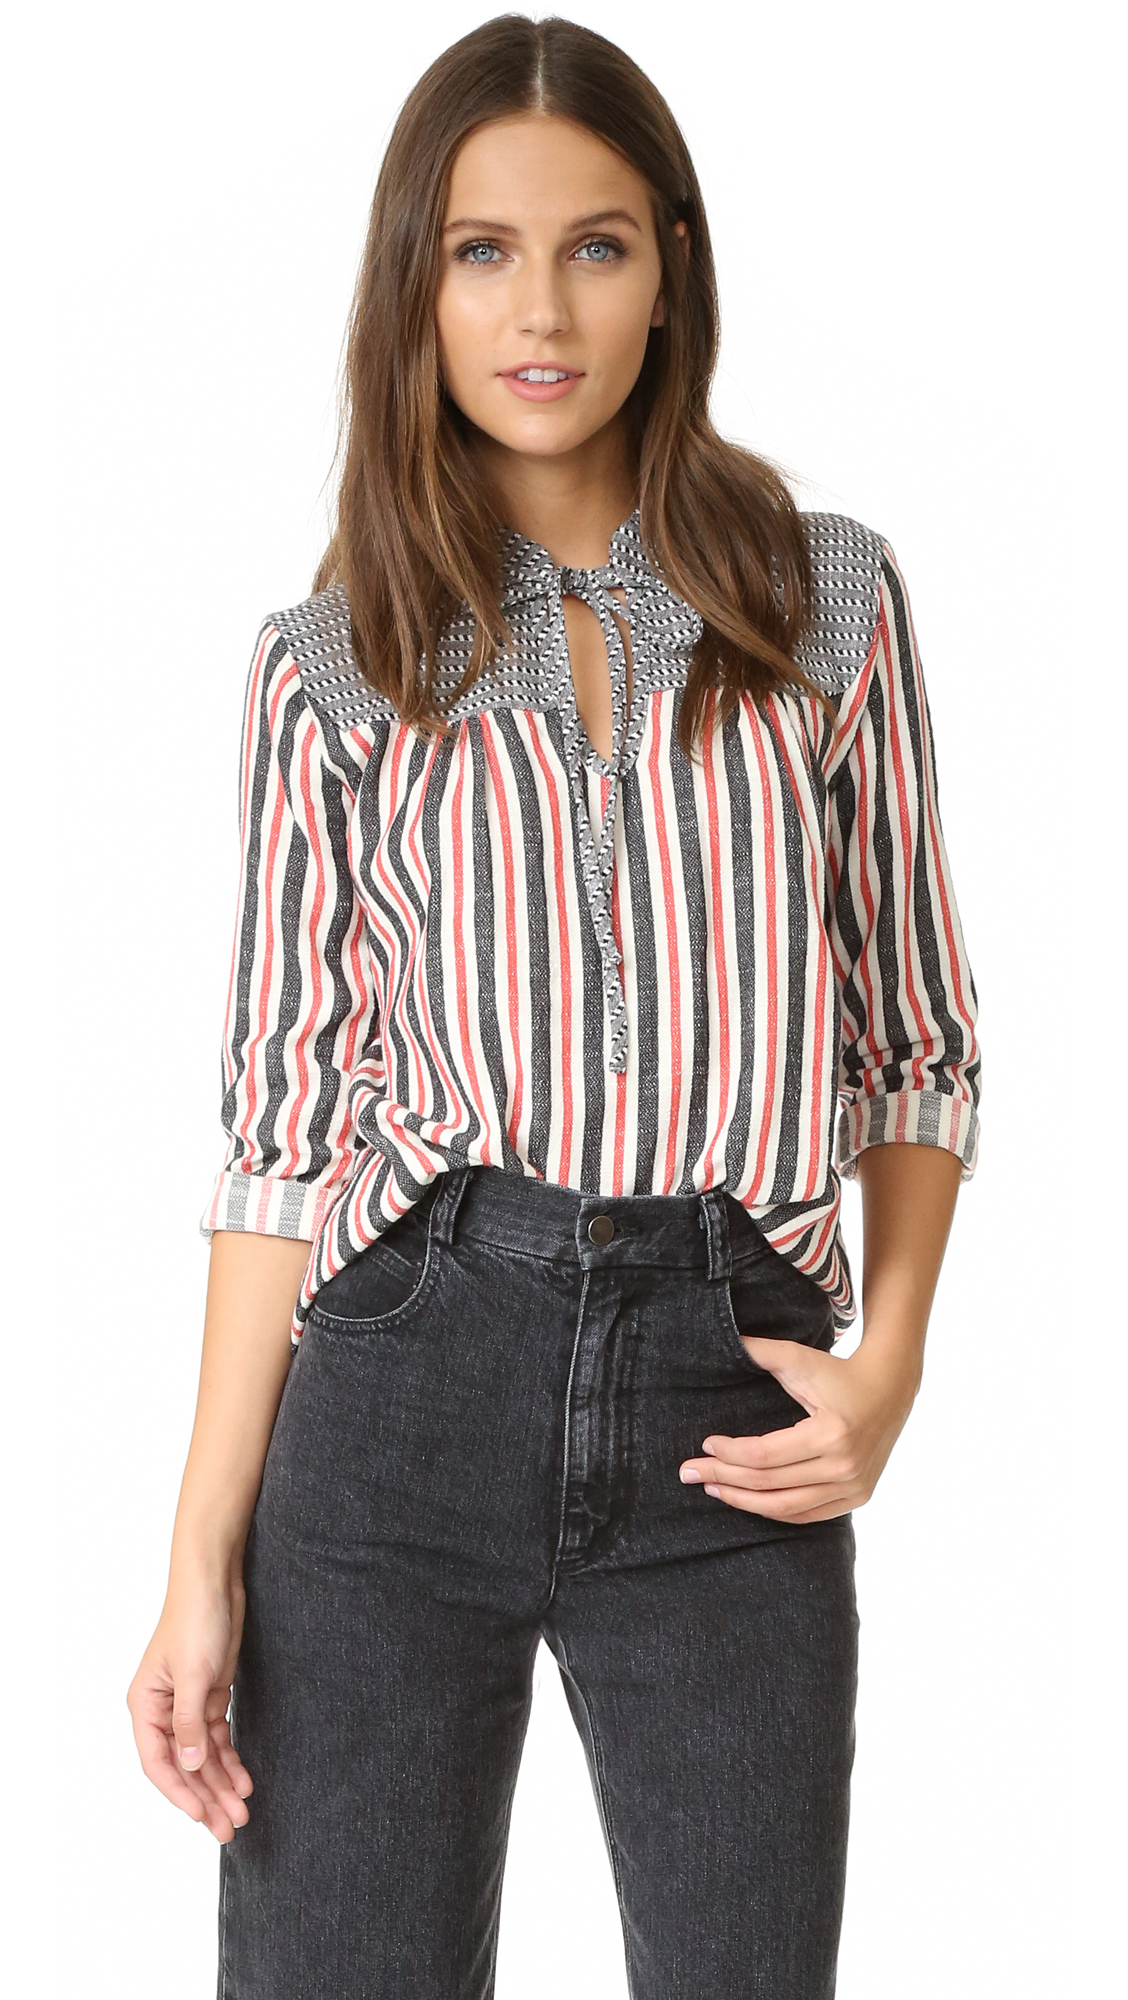 Ace&Jig Constance Top - Cavalier at Shopbop